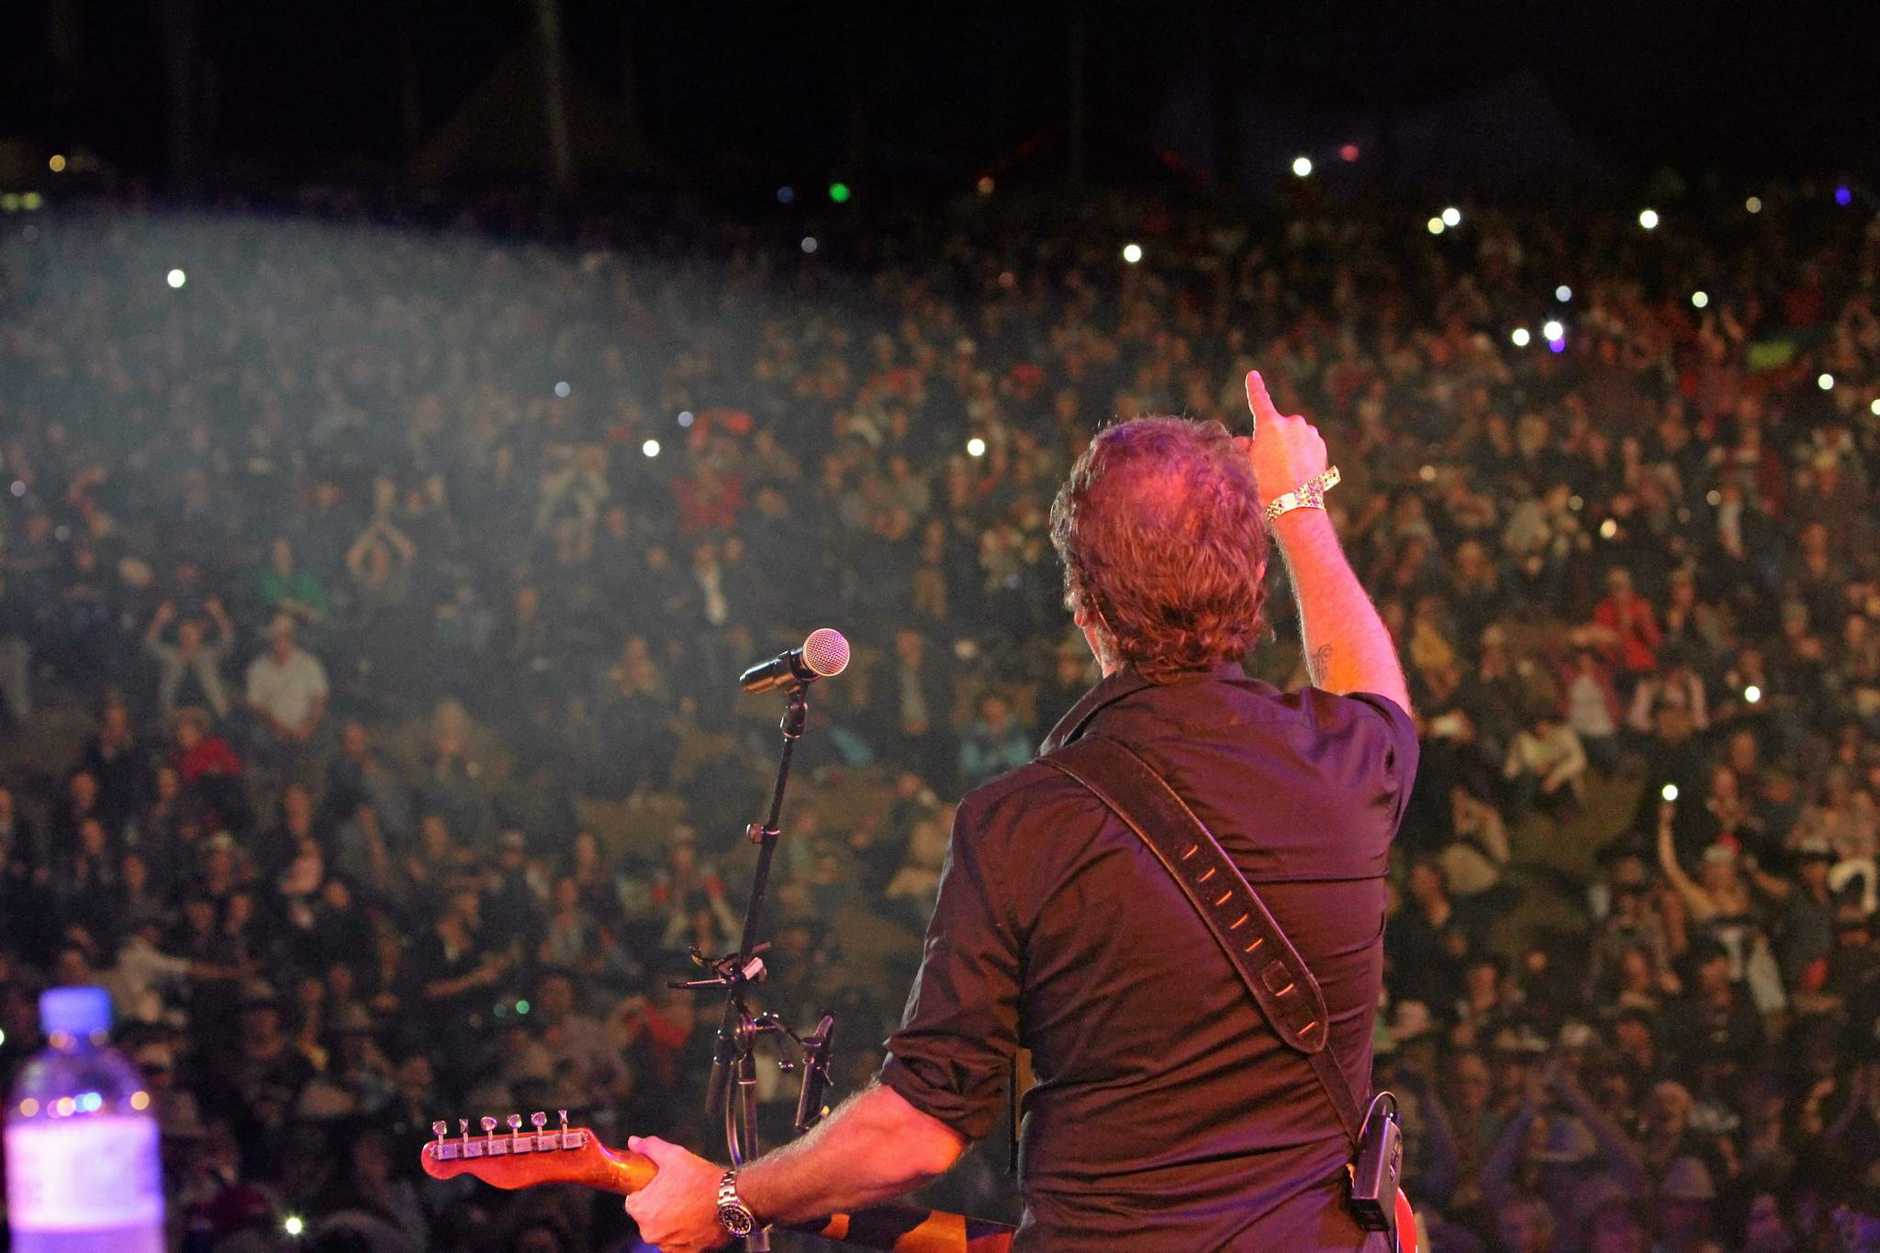 Troy Cassar-Daley had all the lights on the hill in his tribute to Slim Dusty at the 2015 Gympie music muster Photo Jason Dougherty / Gympie Times